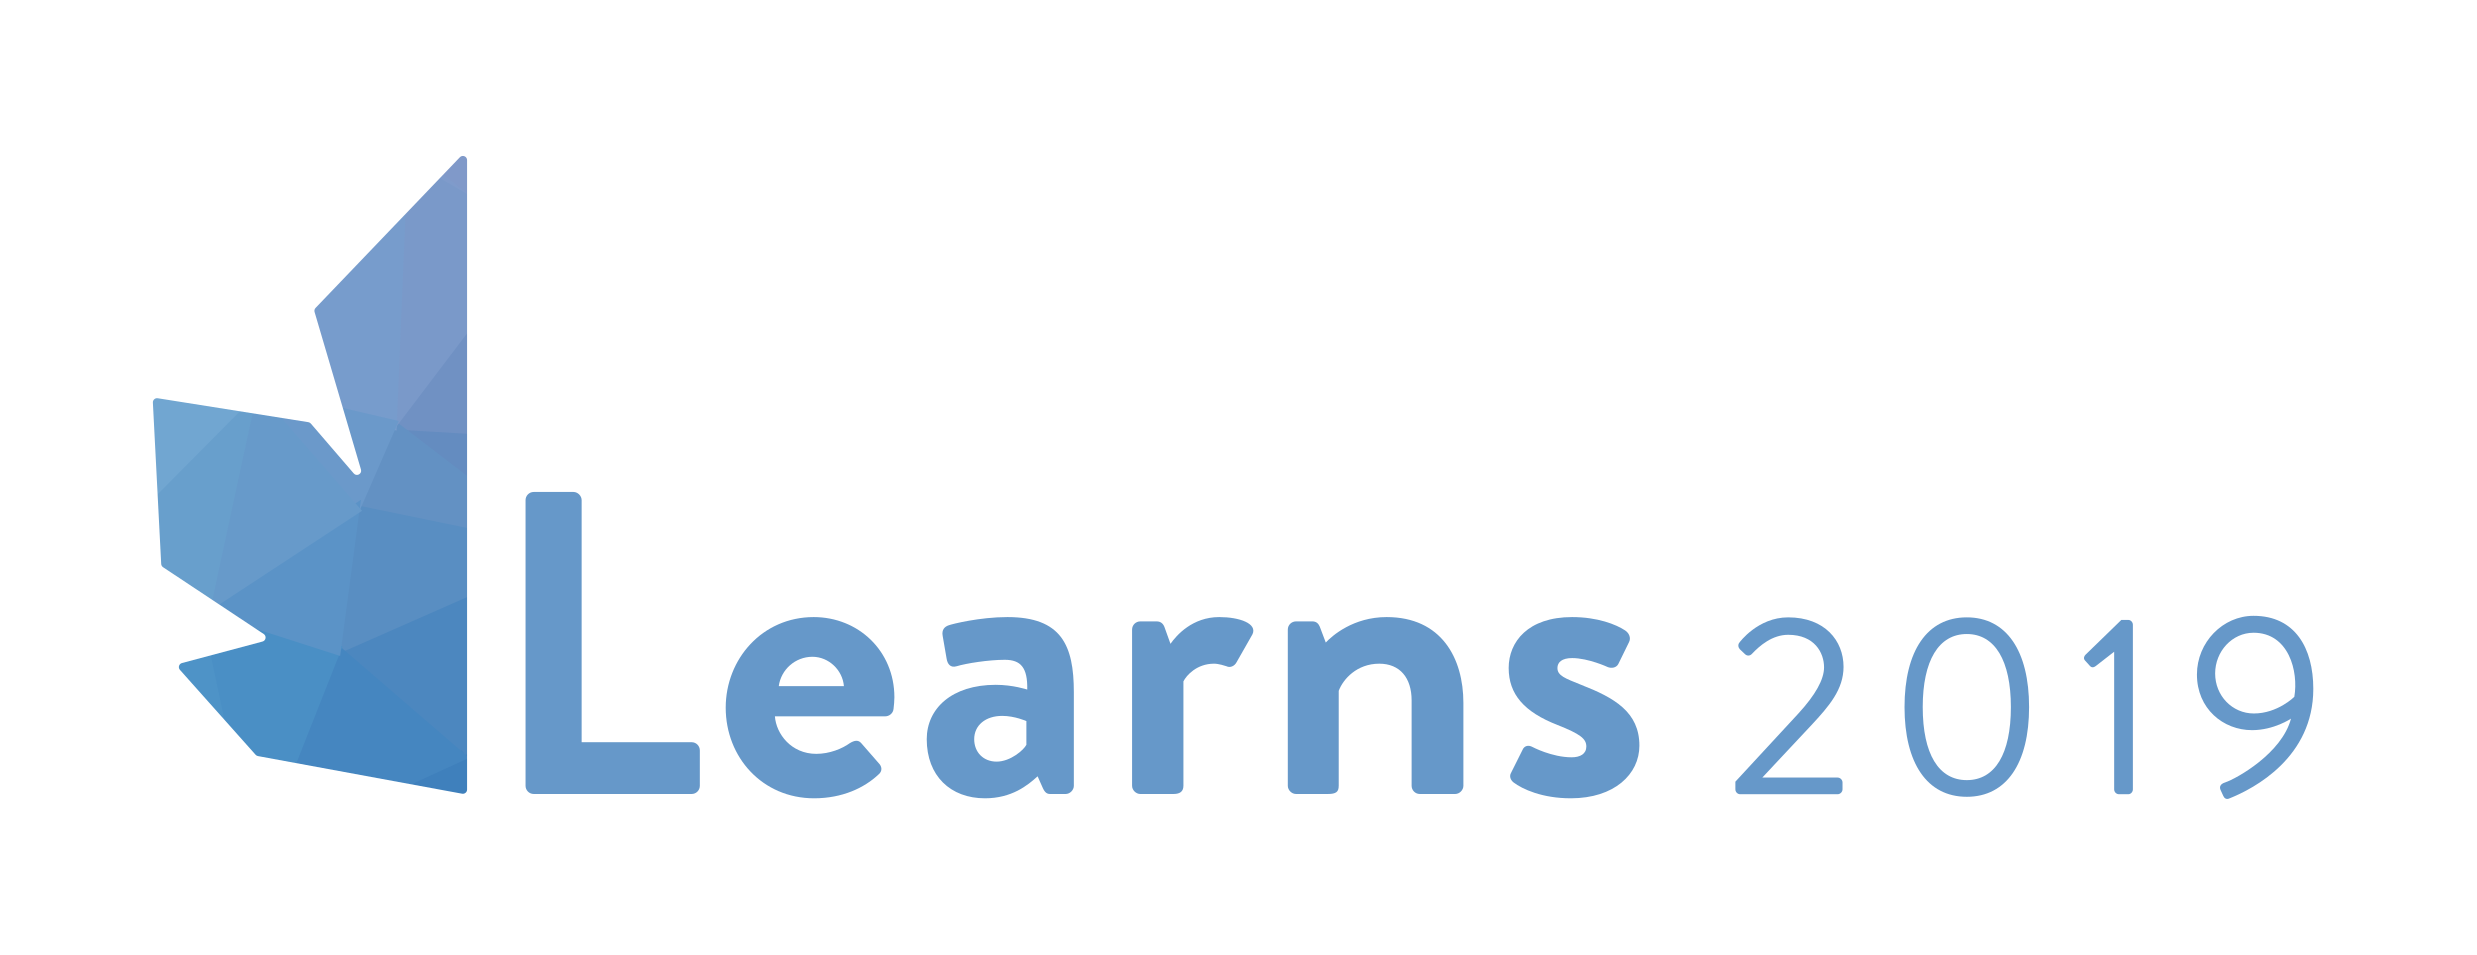 BostonFIG Learns logo